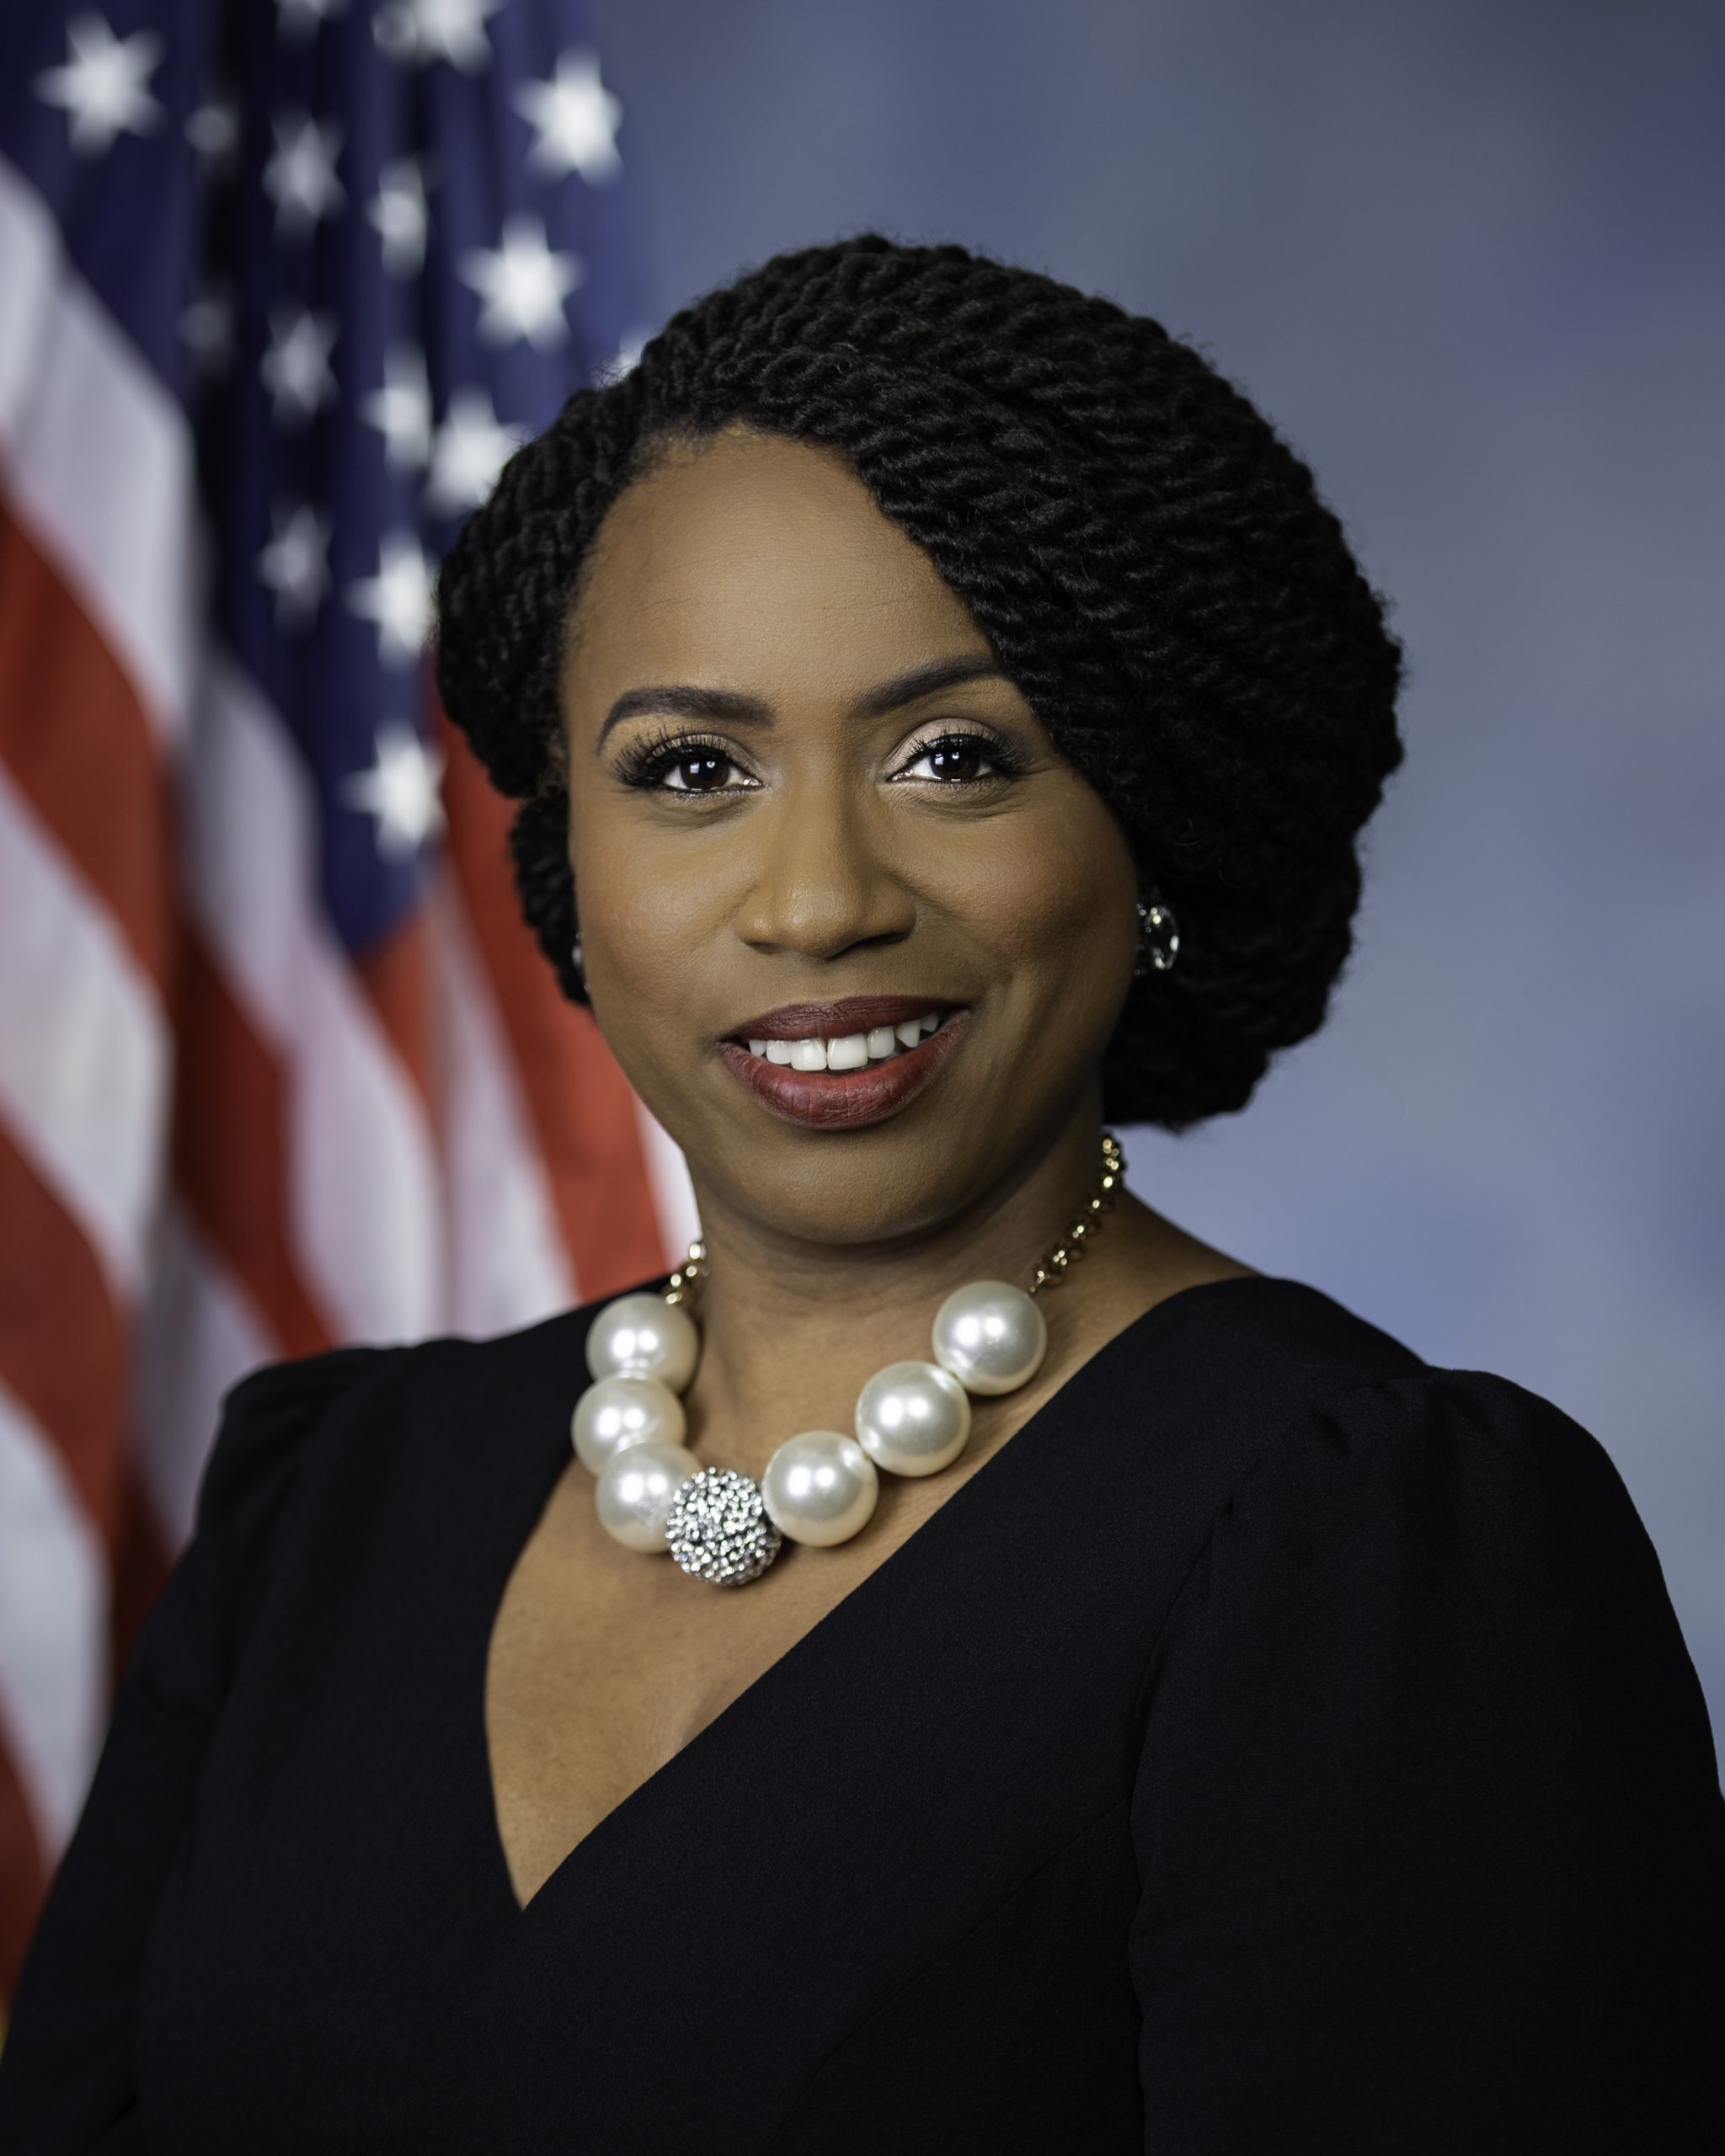 Photo of Ayanna Pressley Pushes $2.5 Billion Bill to Abolish Discipline in Public Schools Because Too Many Blacks Are Suspended/Expelled